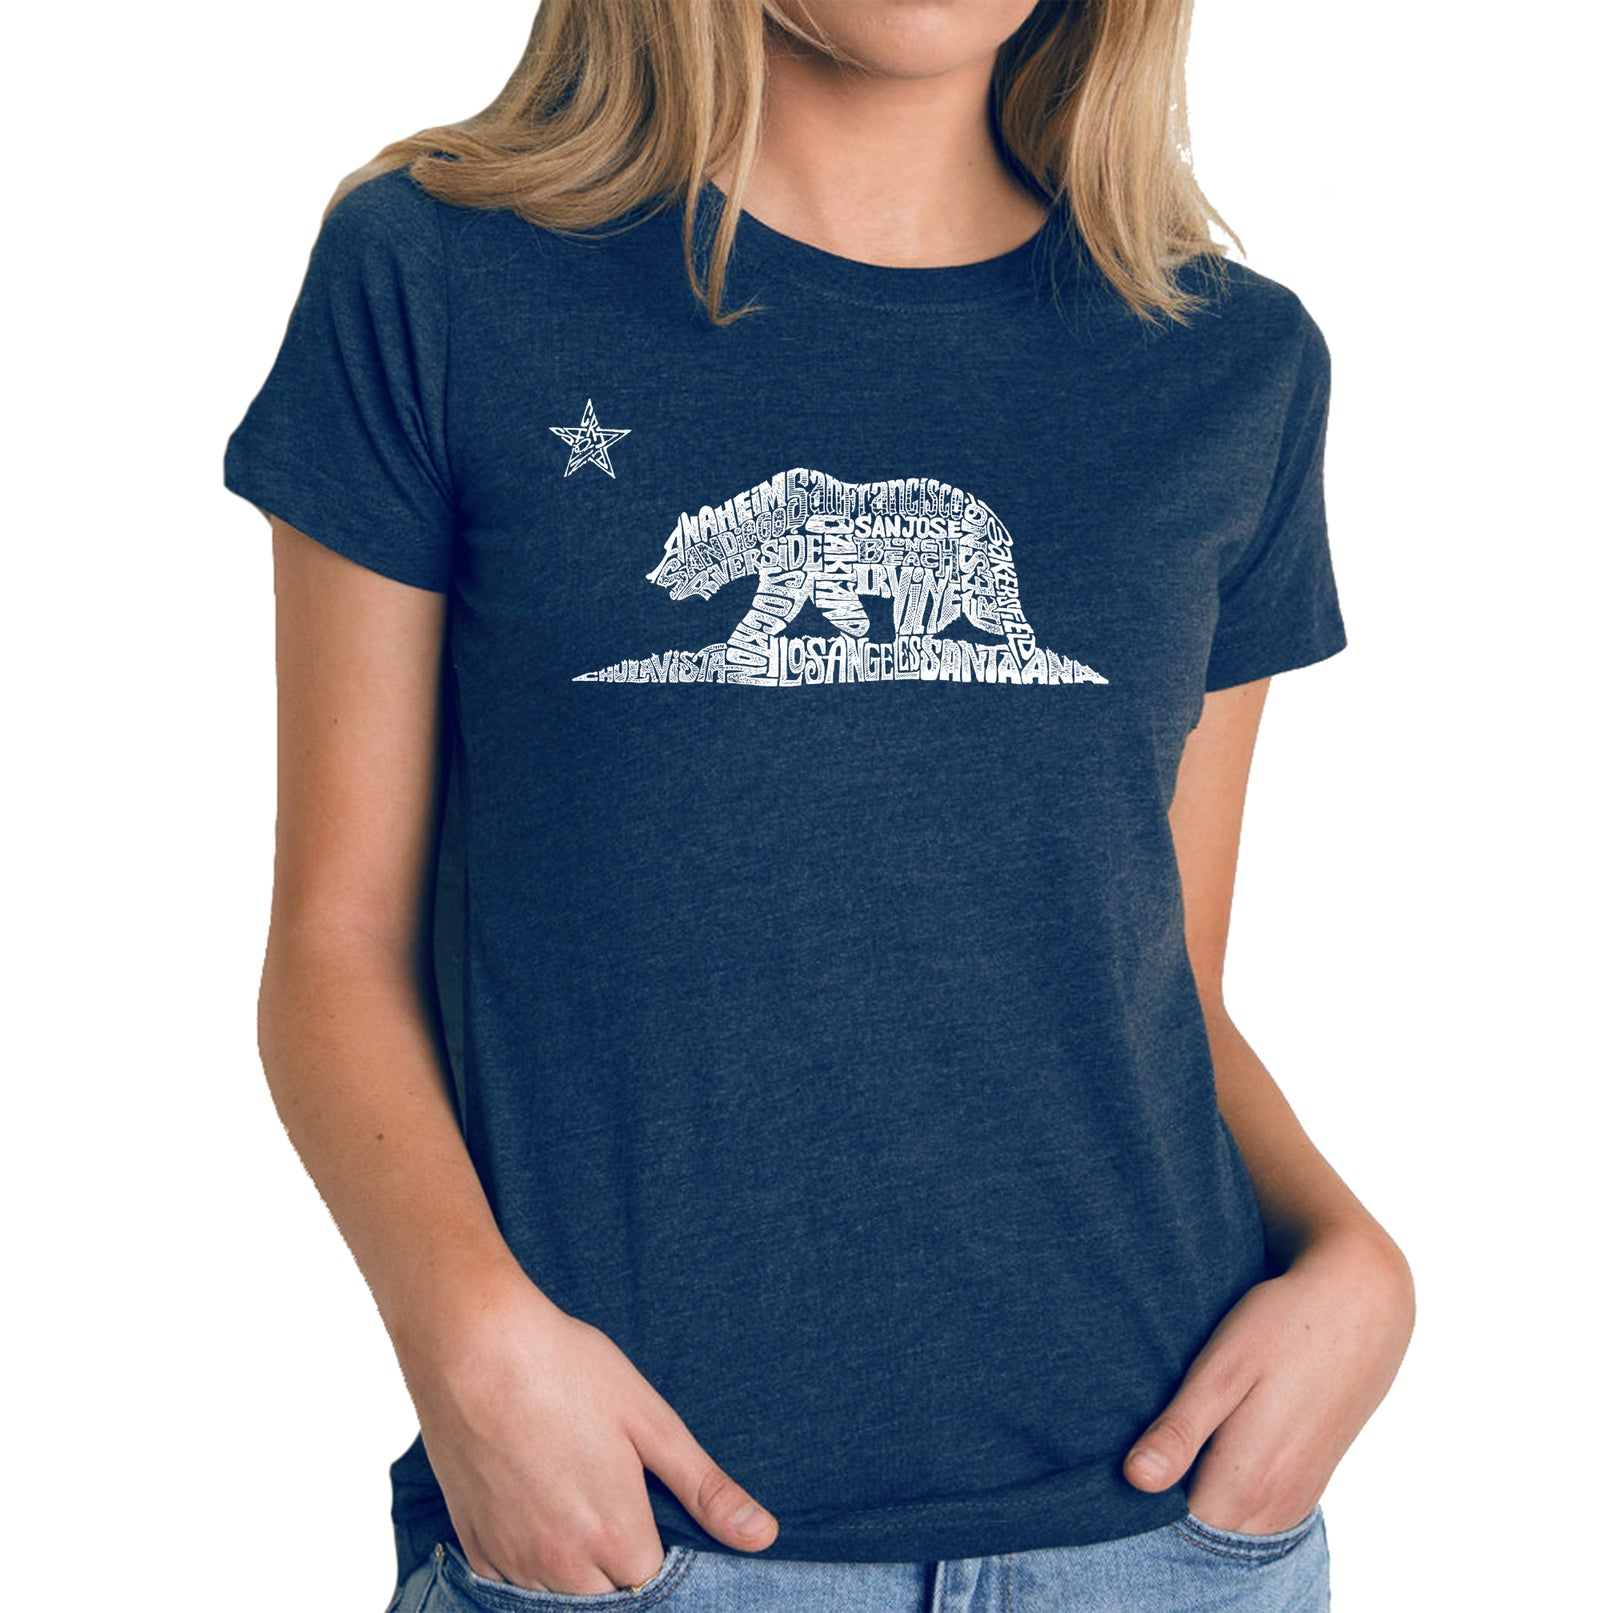 Women's Premium Blend Word Art T-shirt - California Bear